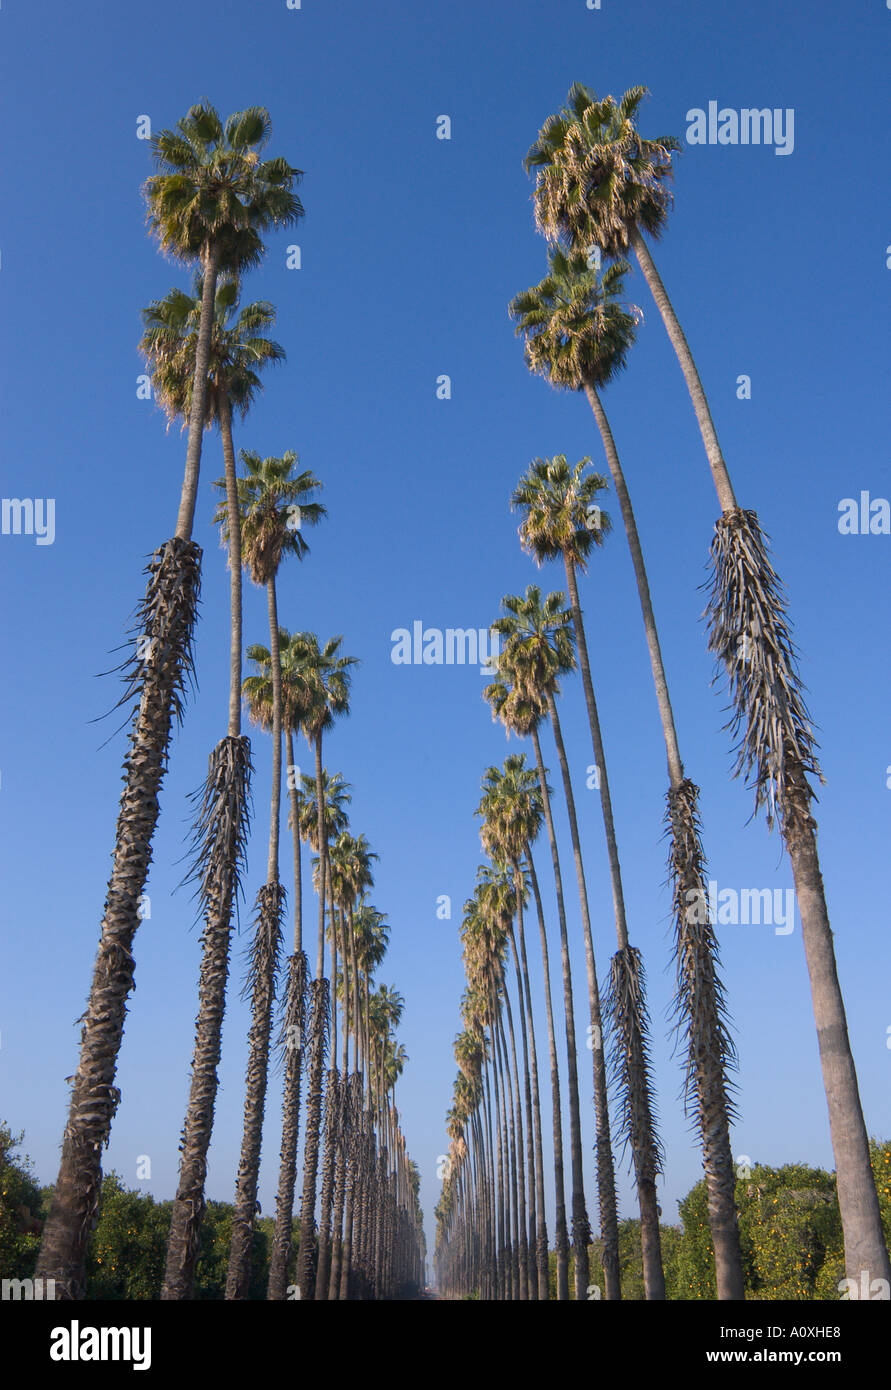 Date Where To Buy Kylie Jenner: Double Row Of Tall Old Date Palm Trees Redlands California